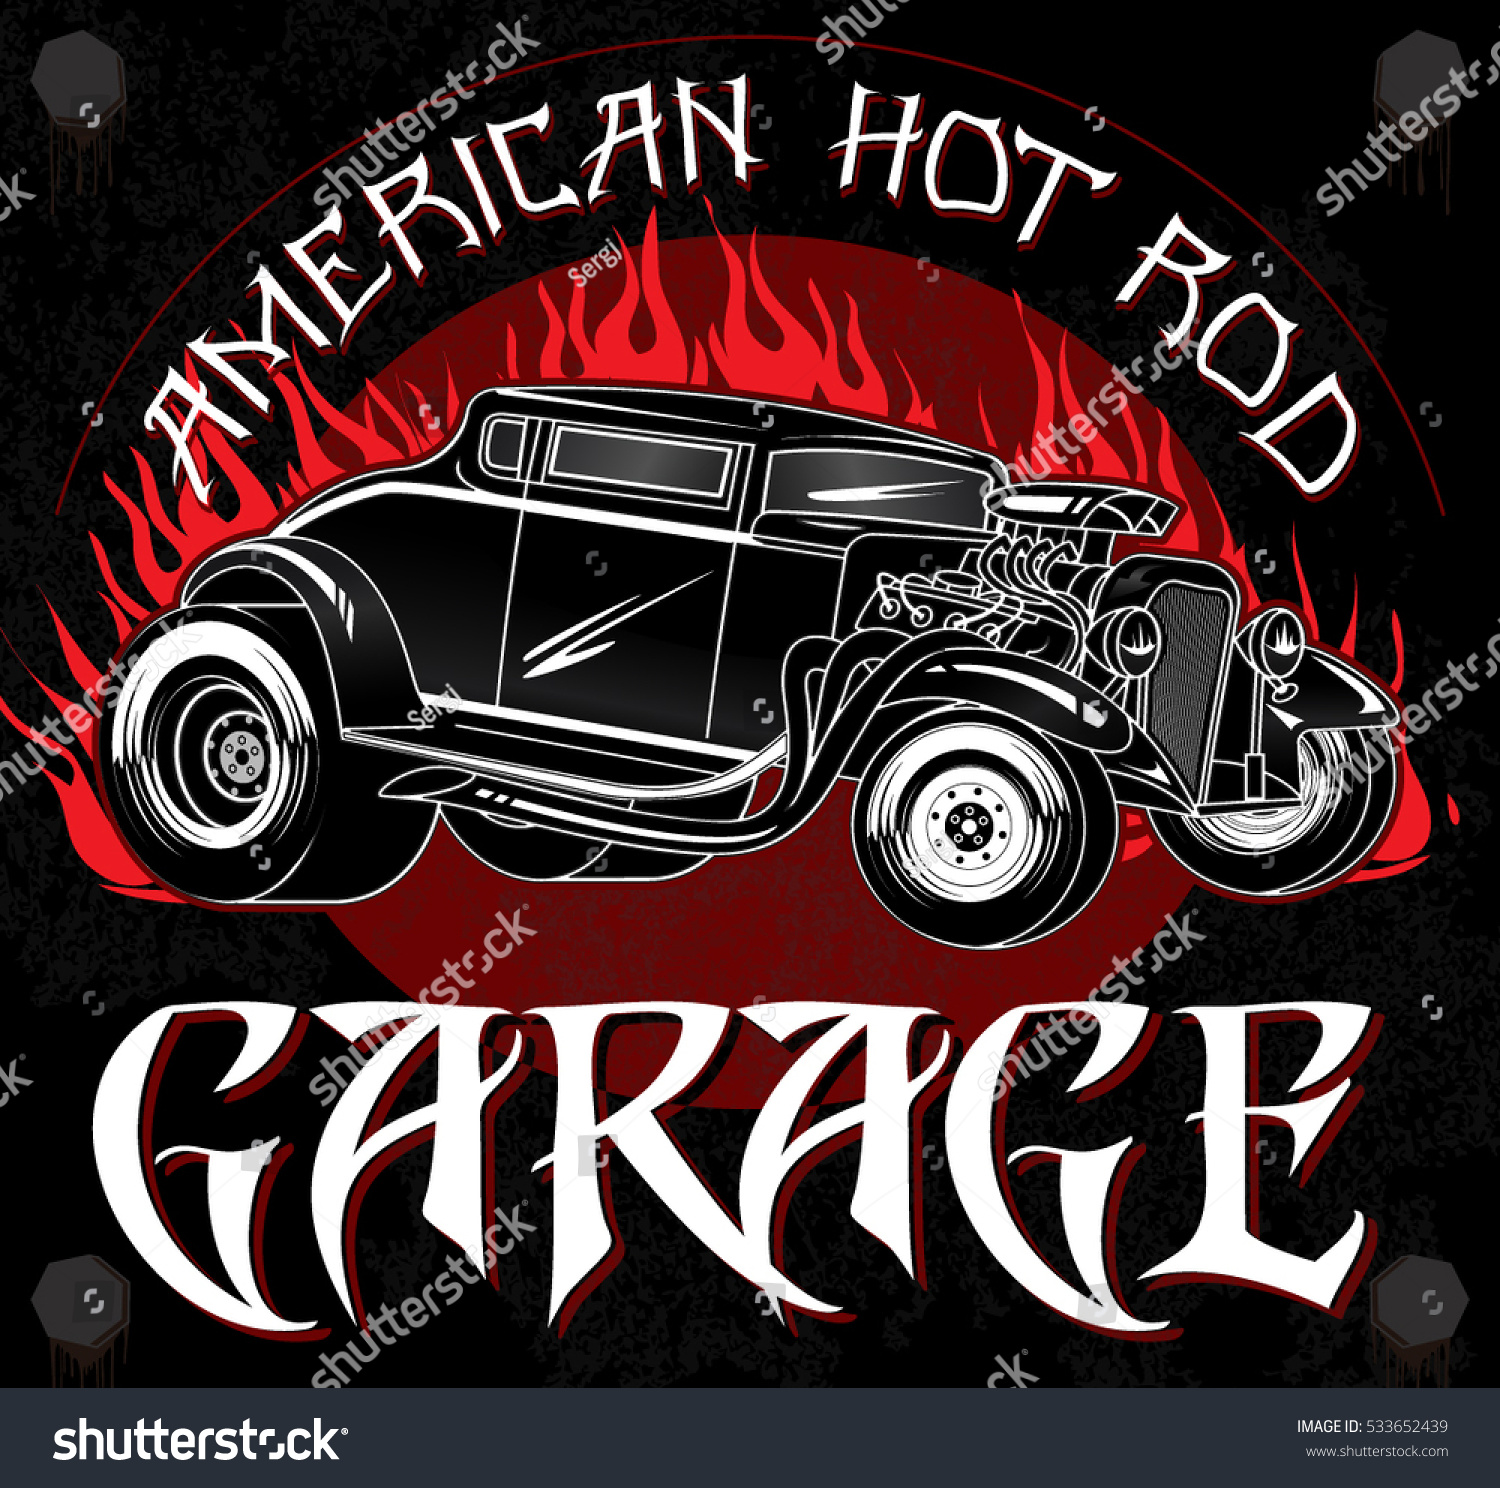 American Hot Rod Garage Stylish Vintage Stock Vector 533652439 ...